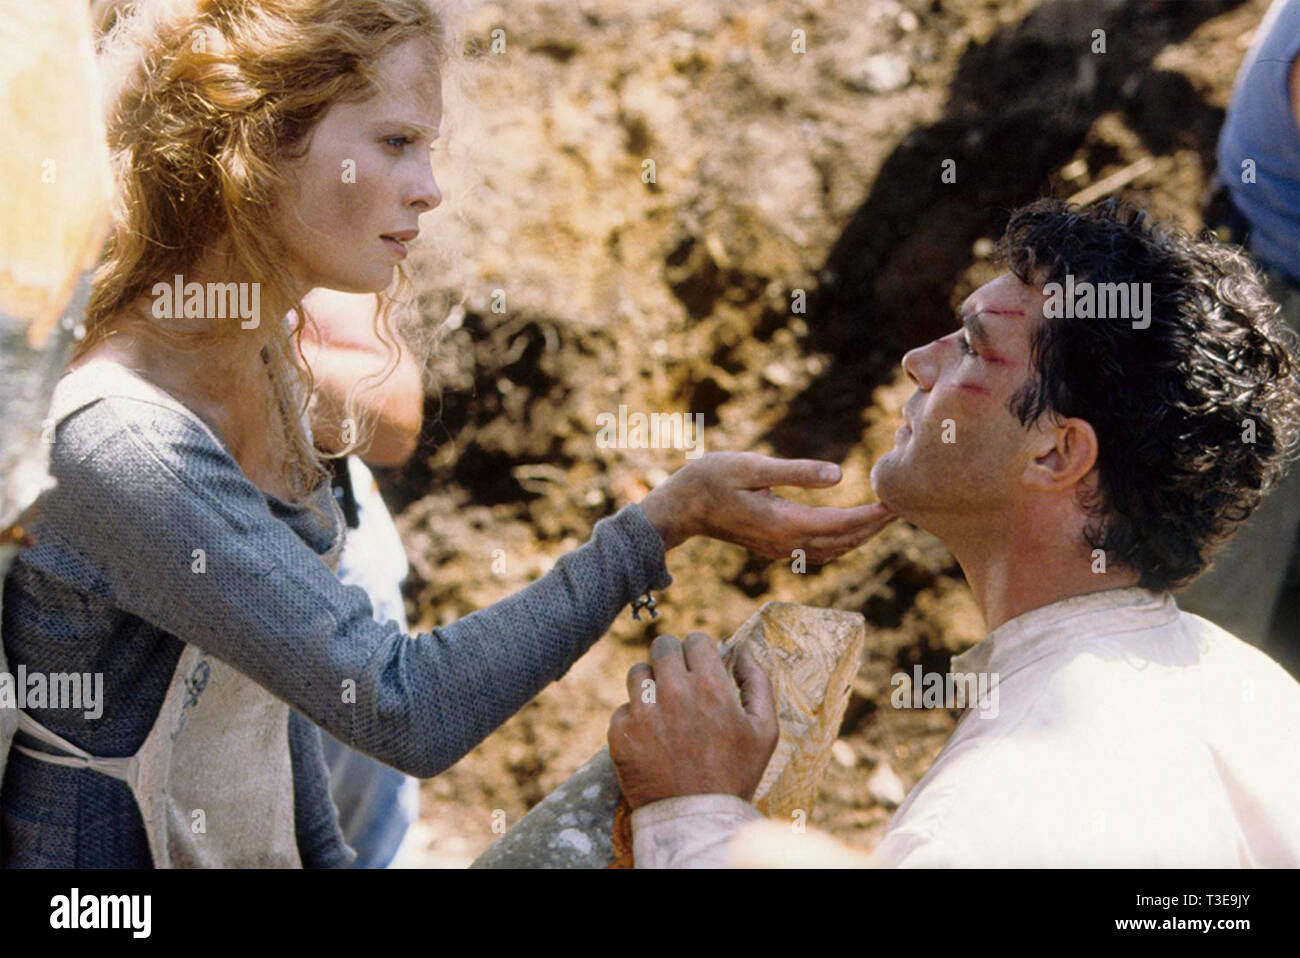 THE 13TH WARRIOR 1999 Touchstone Pictures film with Antonio Banderas and Maria Bonnevie - Stock Image